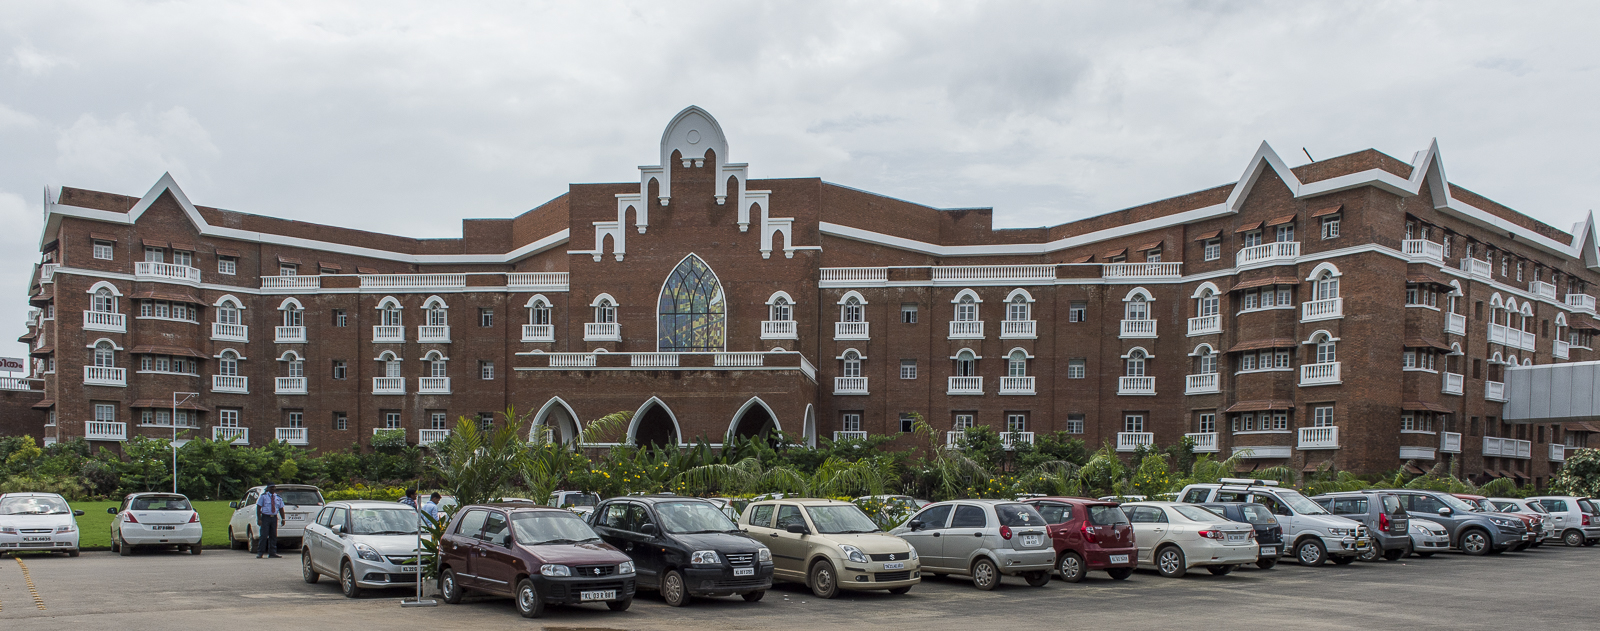 Believers Church Medical College Hospital - Wikipedia